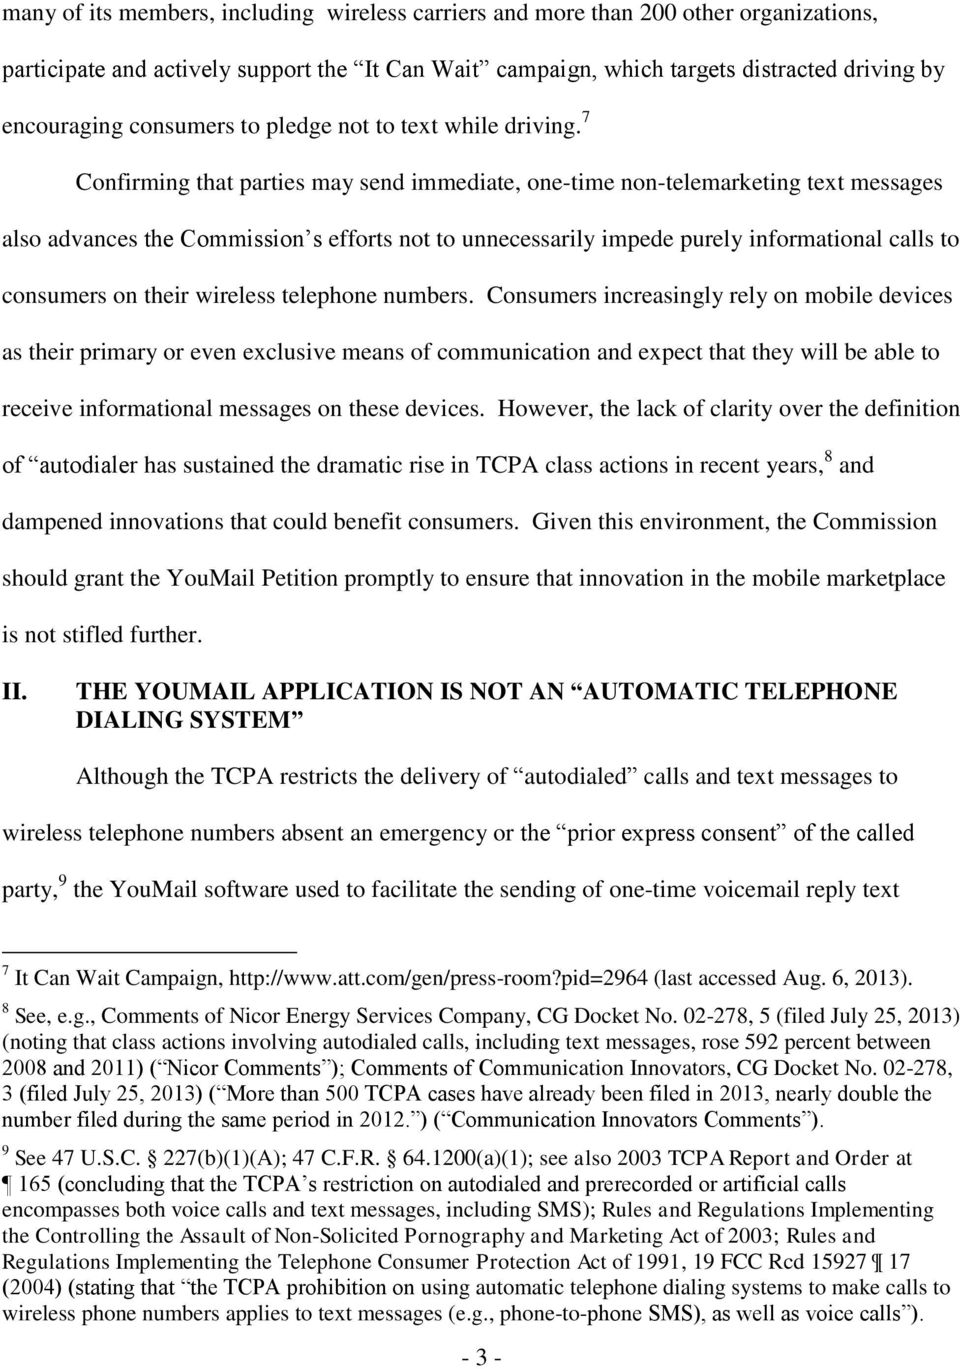 7 Confirming that parties may send immediate, one-time non-telemarketing text messages also advances the Commission s efforts not to unnecessarily impede purely informational calls to consumers on